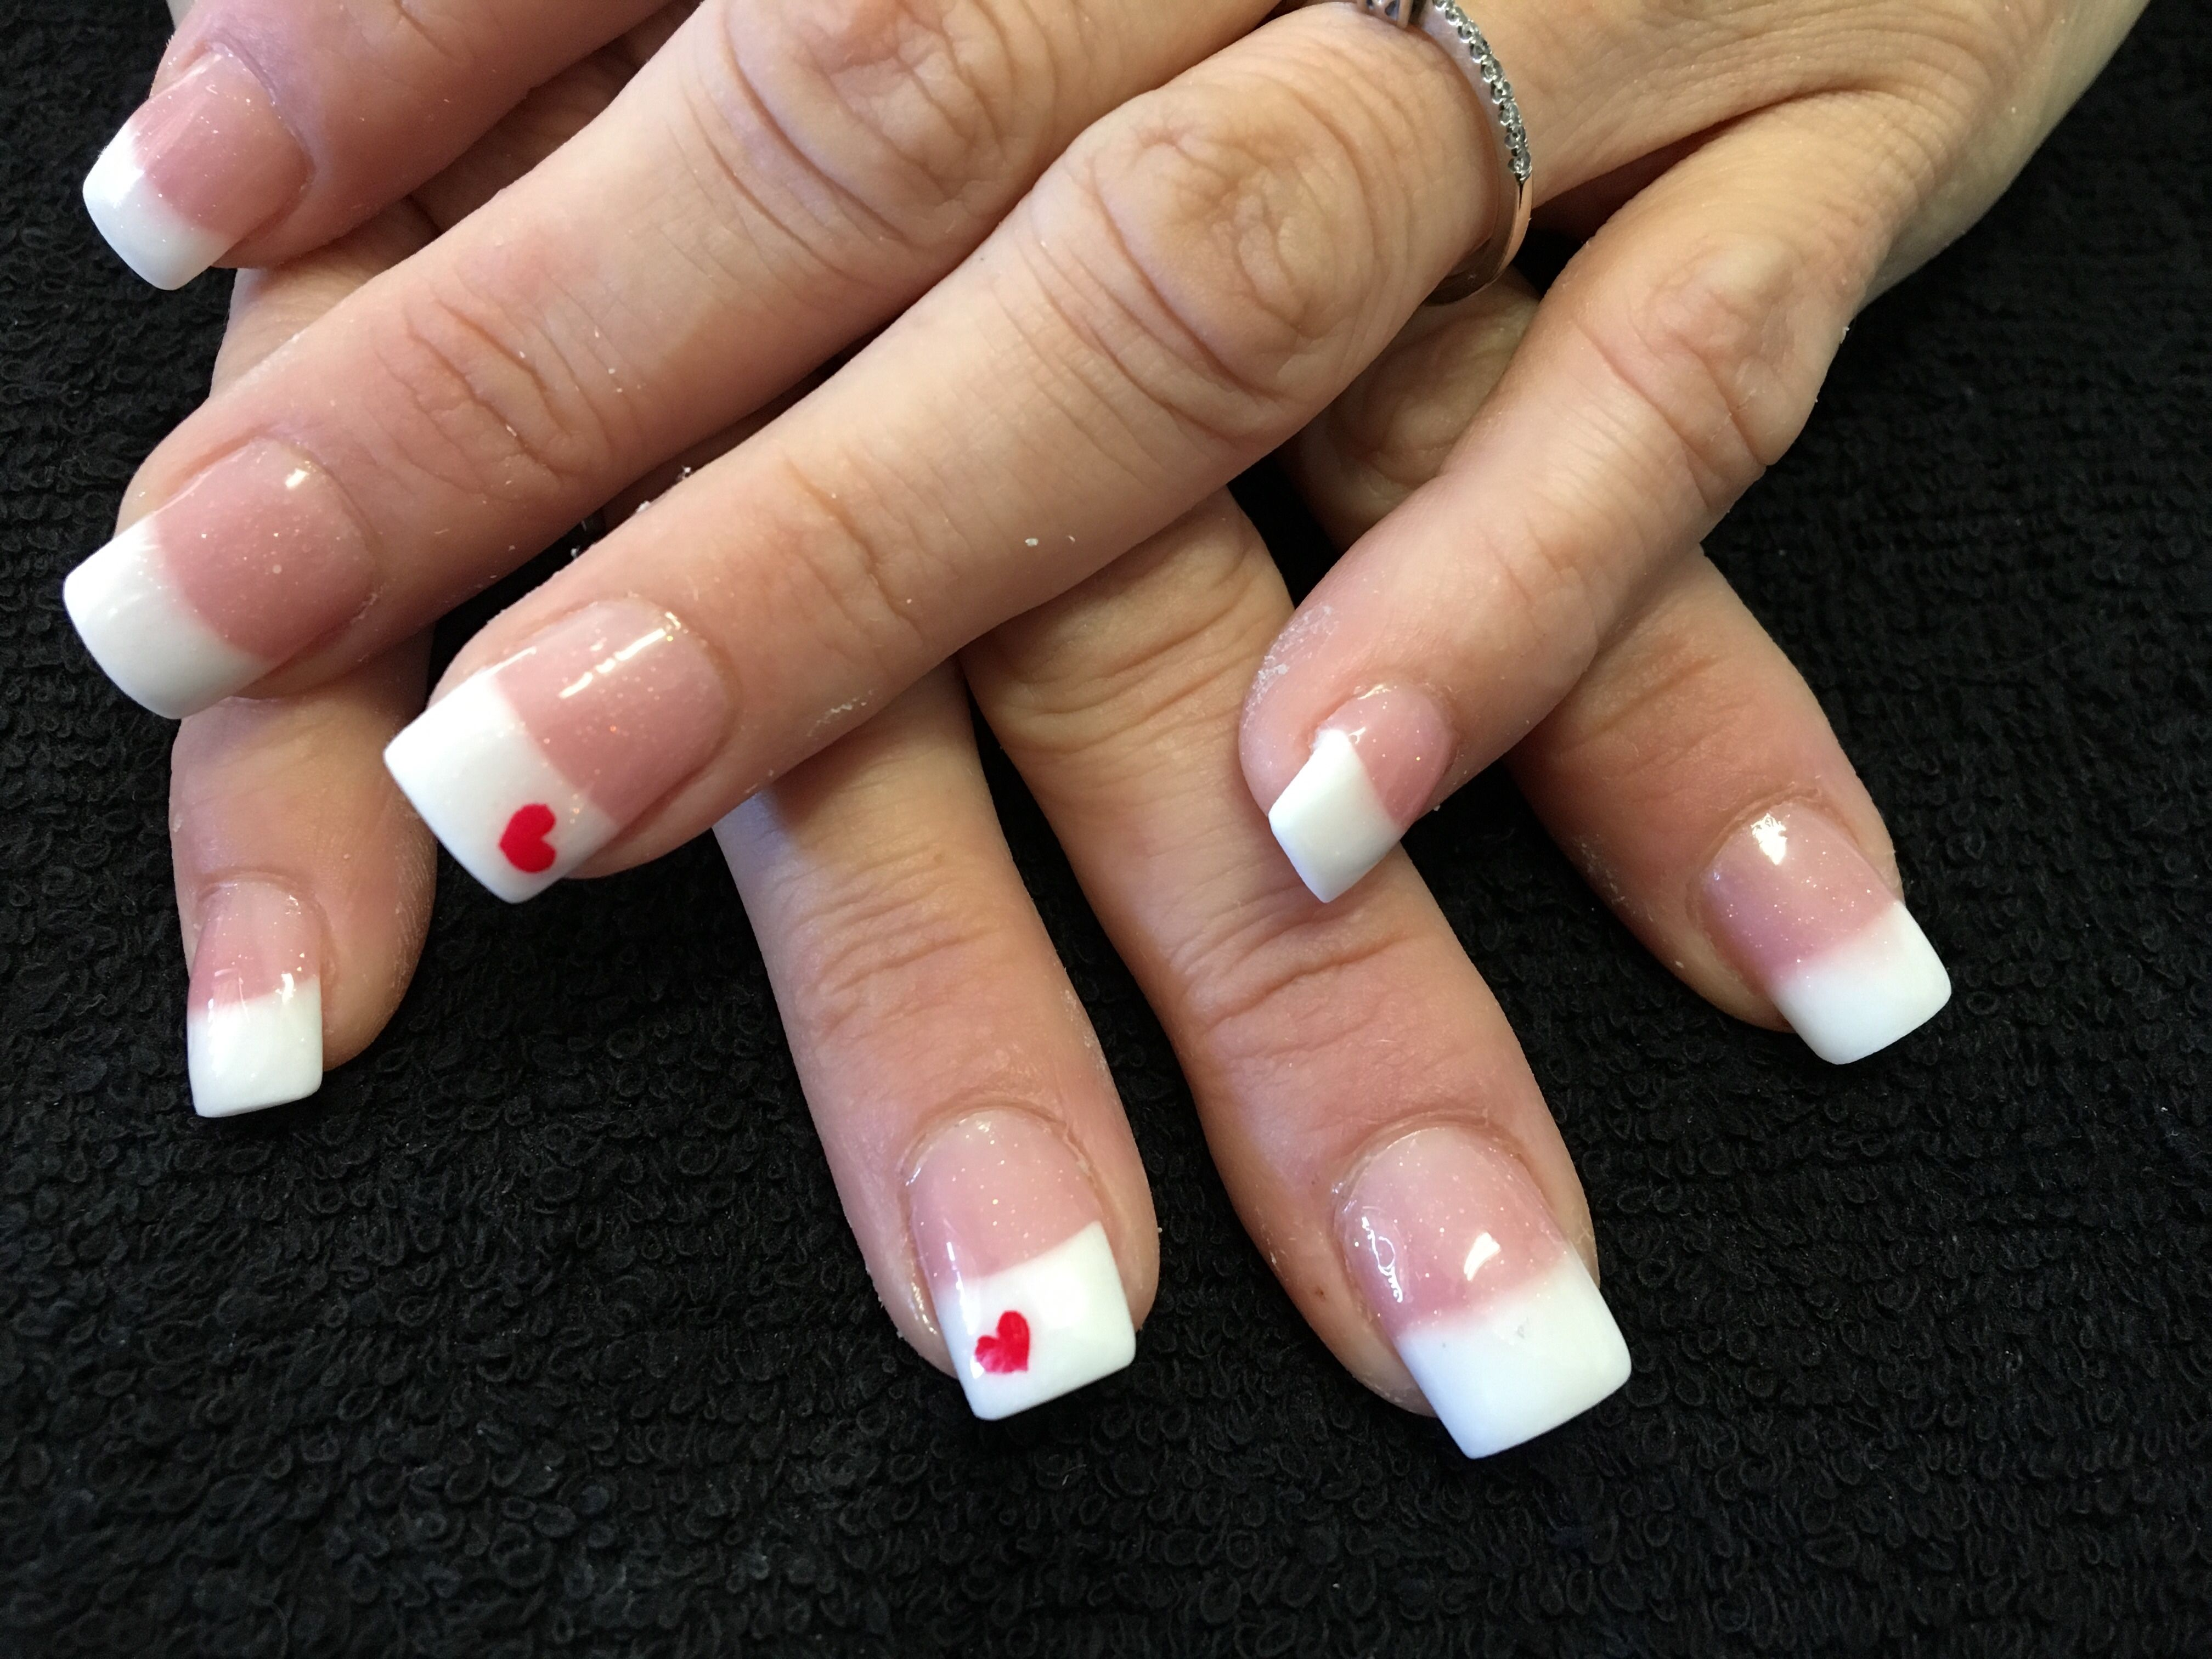 Full Set of Tammy Taylor Pink and White Nails | Nail art | Pinterest ...